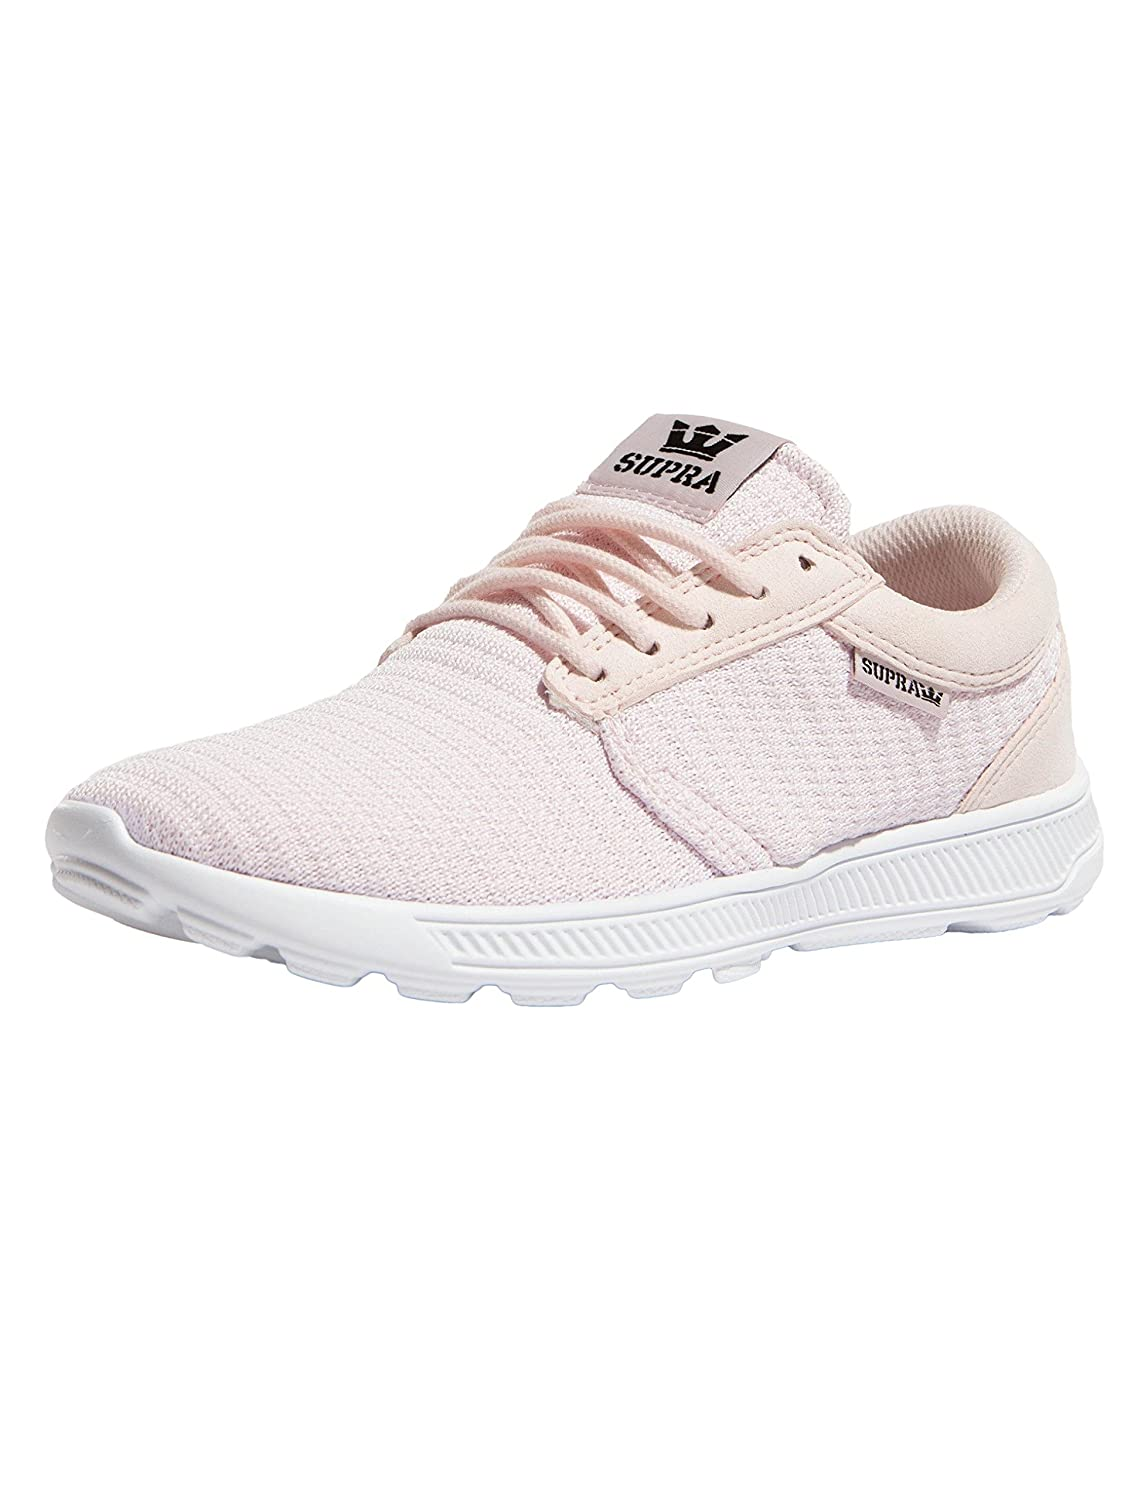 Supra Men's Hammer Run Skate Shoe B074KKRDRY 6.5 M US|Pink/Pink-white